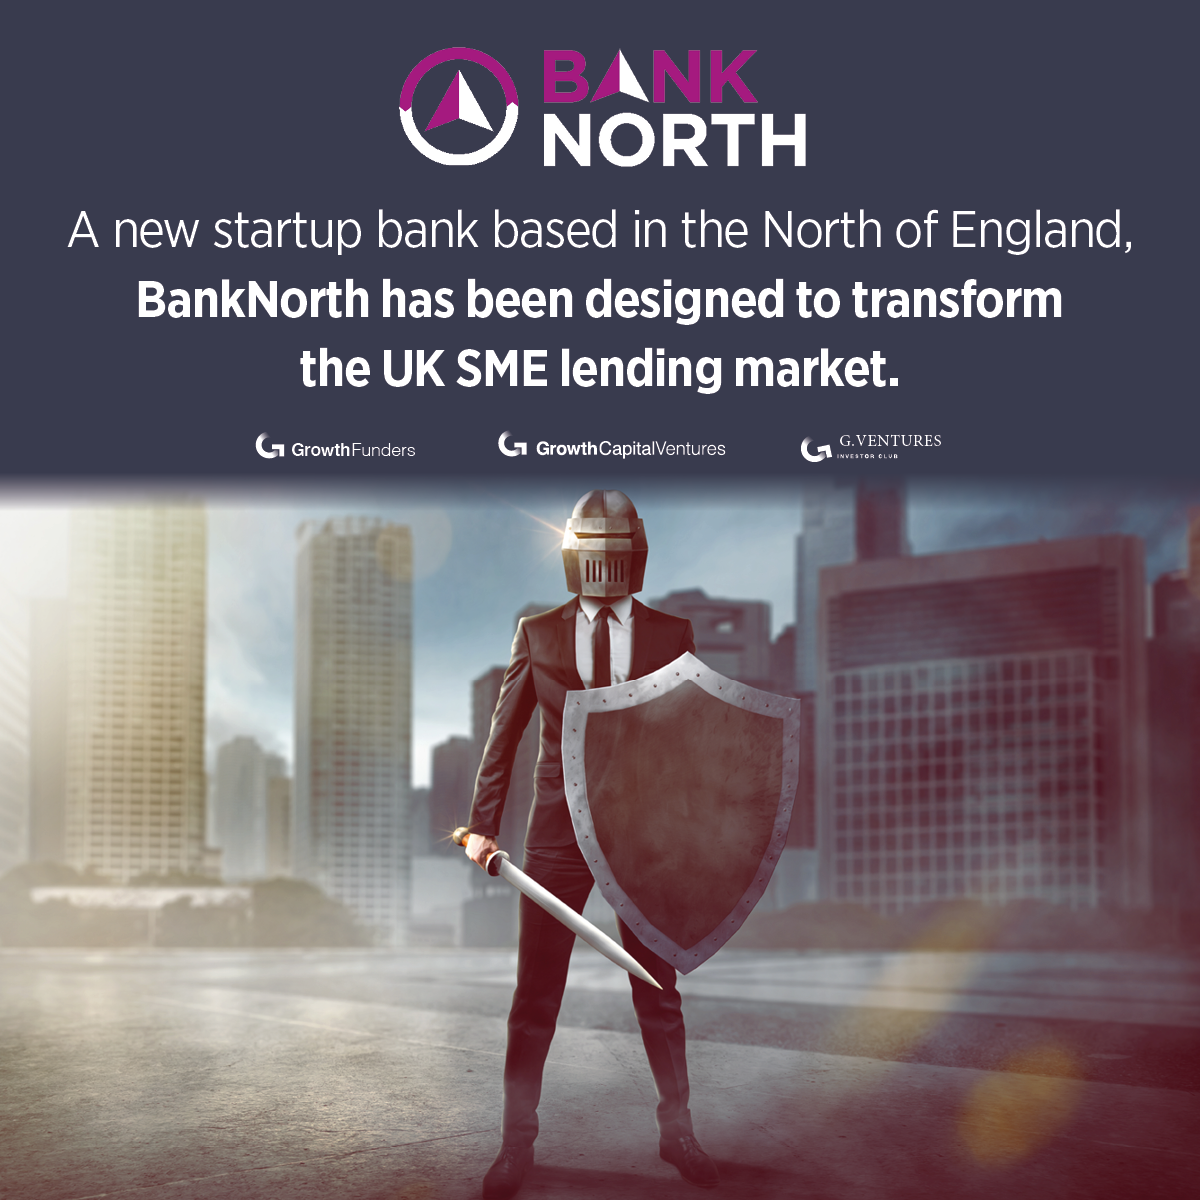 6 key facts about BankNorth and their live investment opportunity